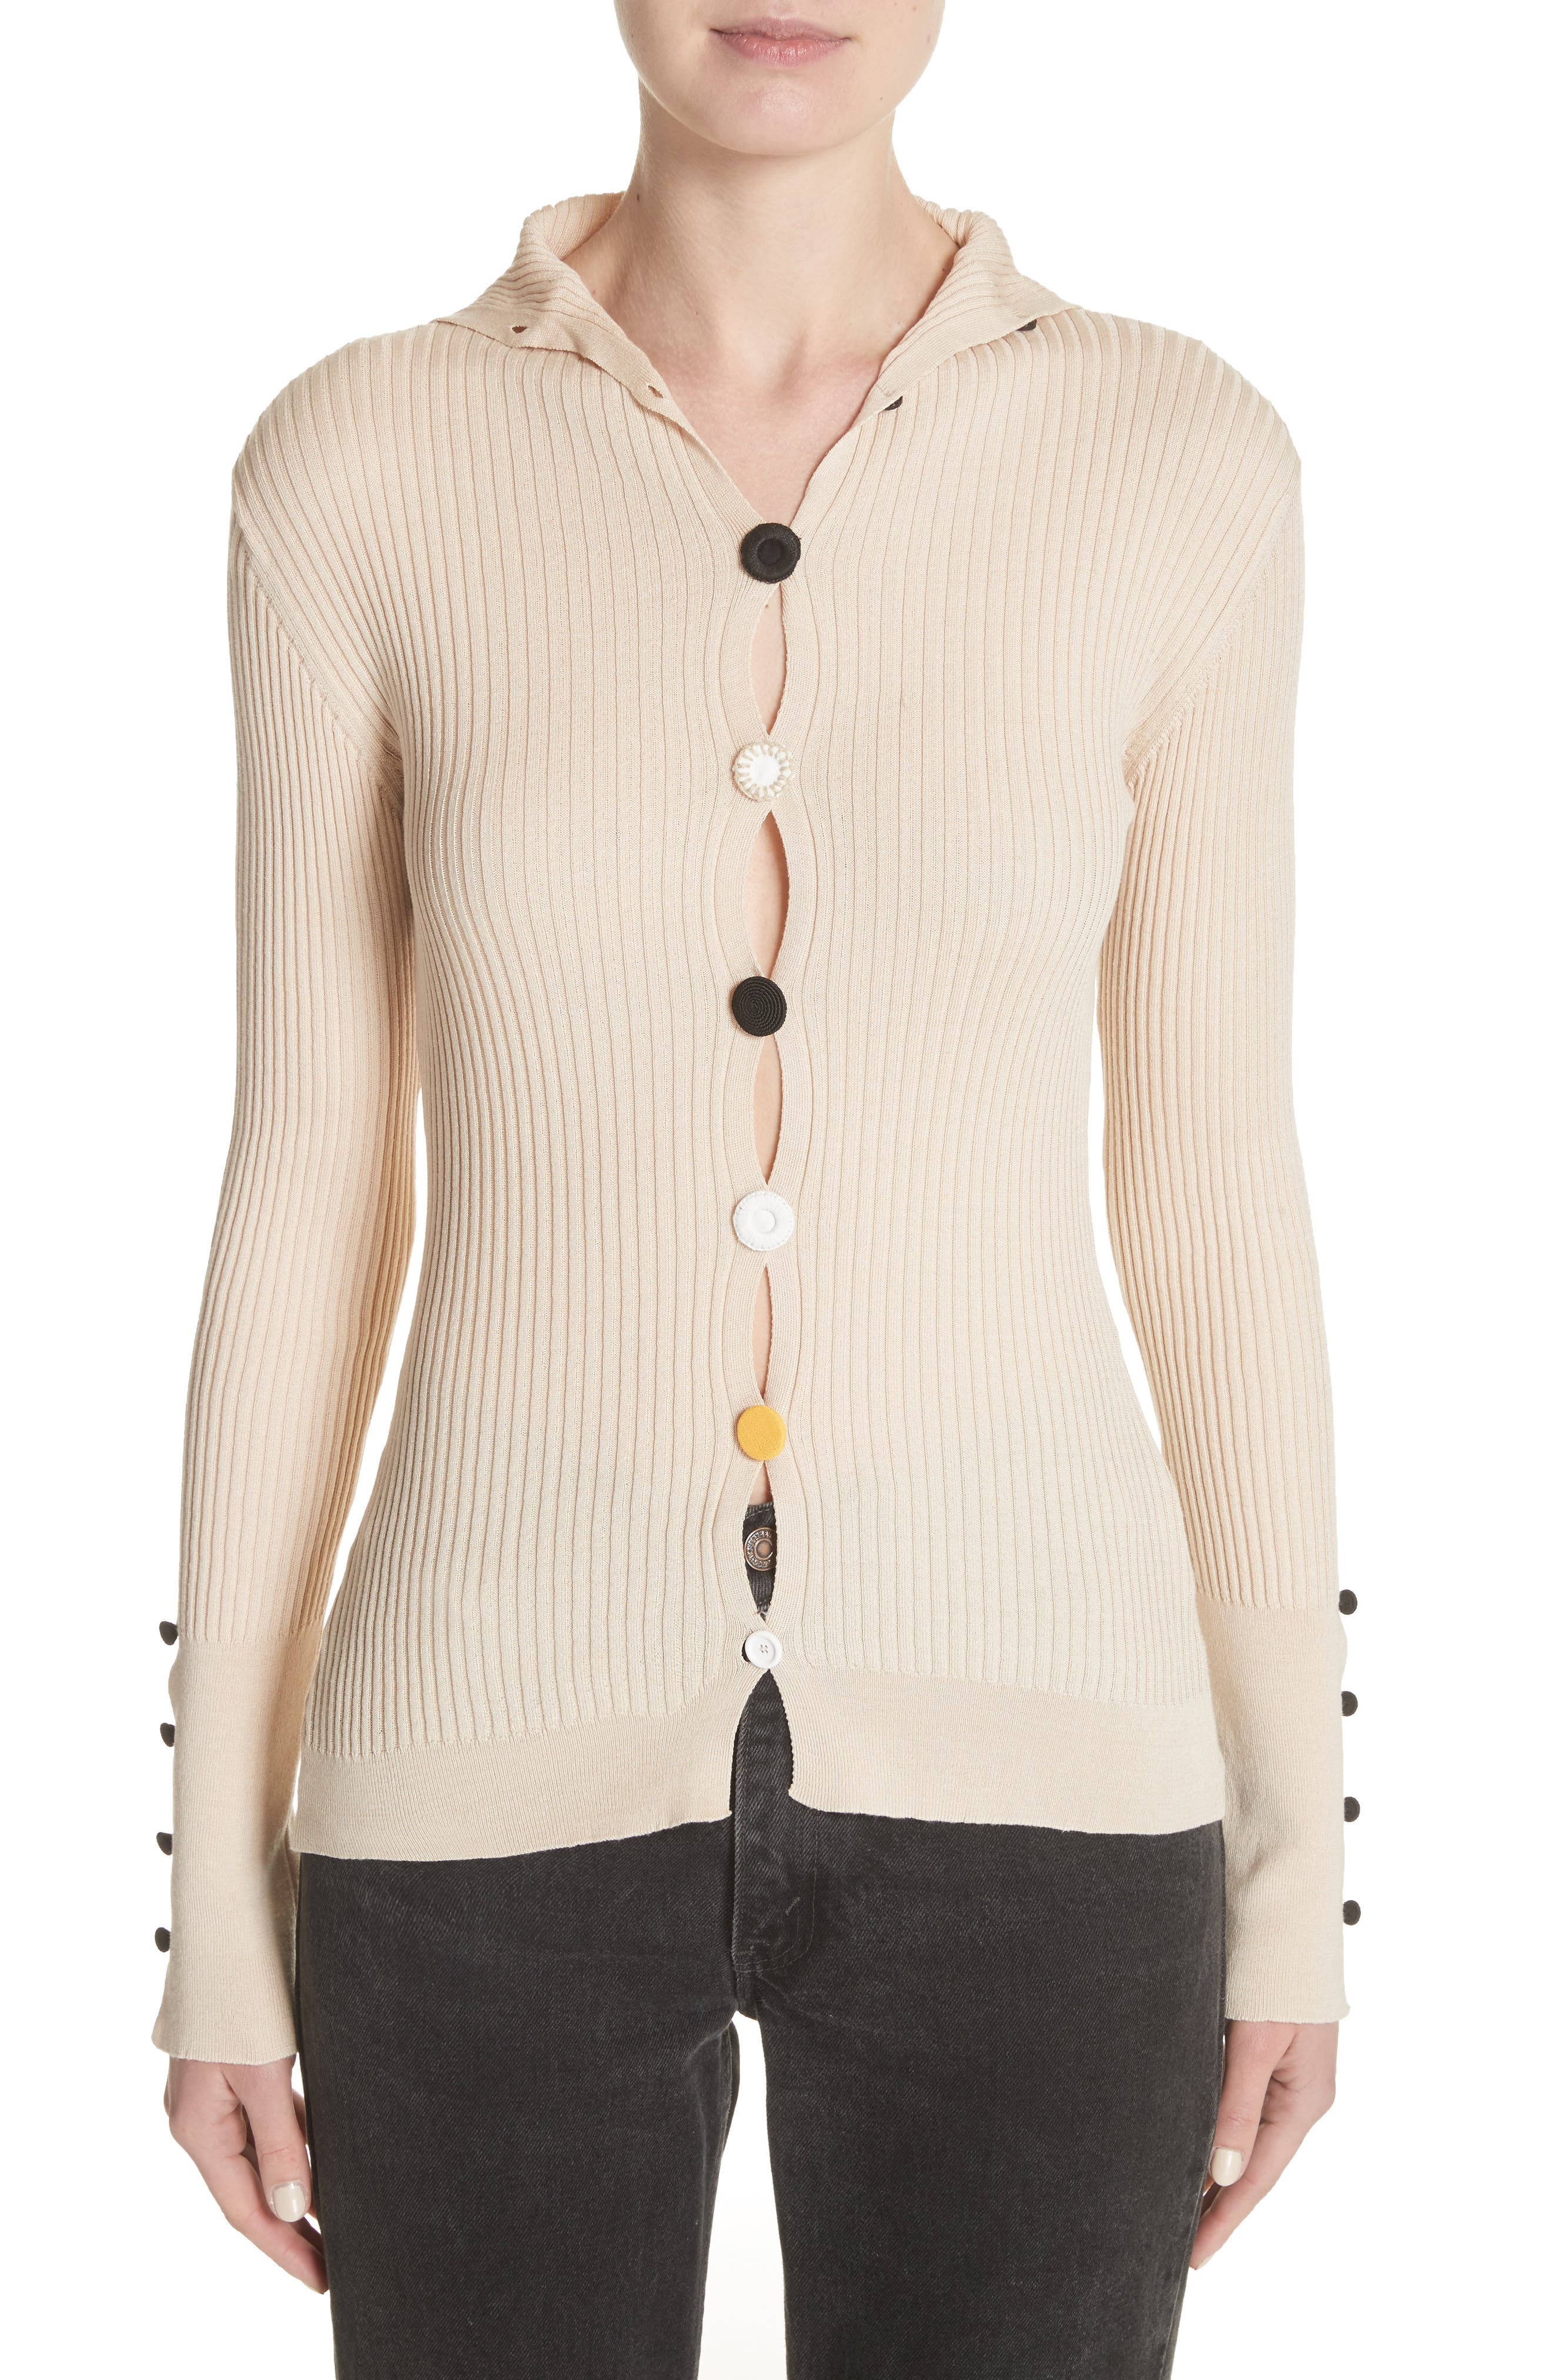 Le Cardigan Ribbed Button Cardigan,                             Main thumbnail 1, color,                             Beige